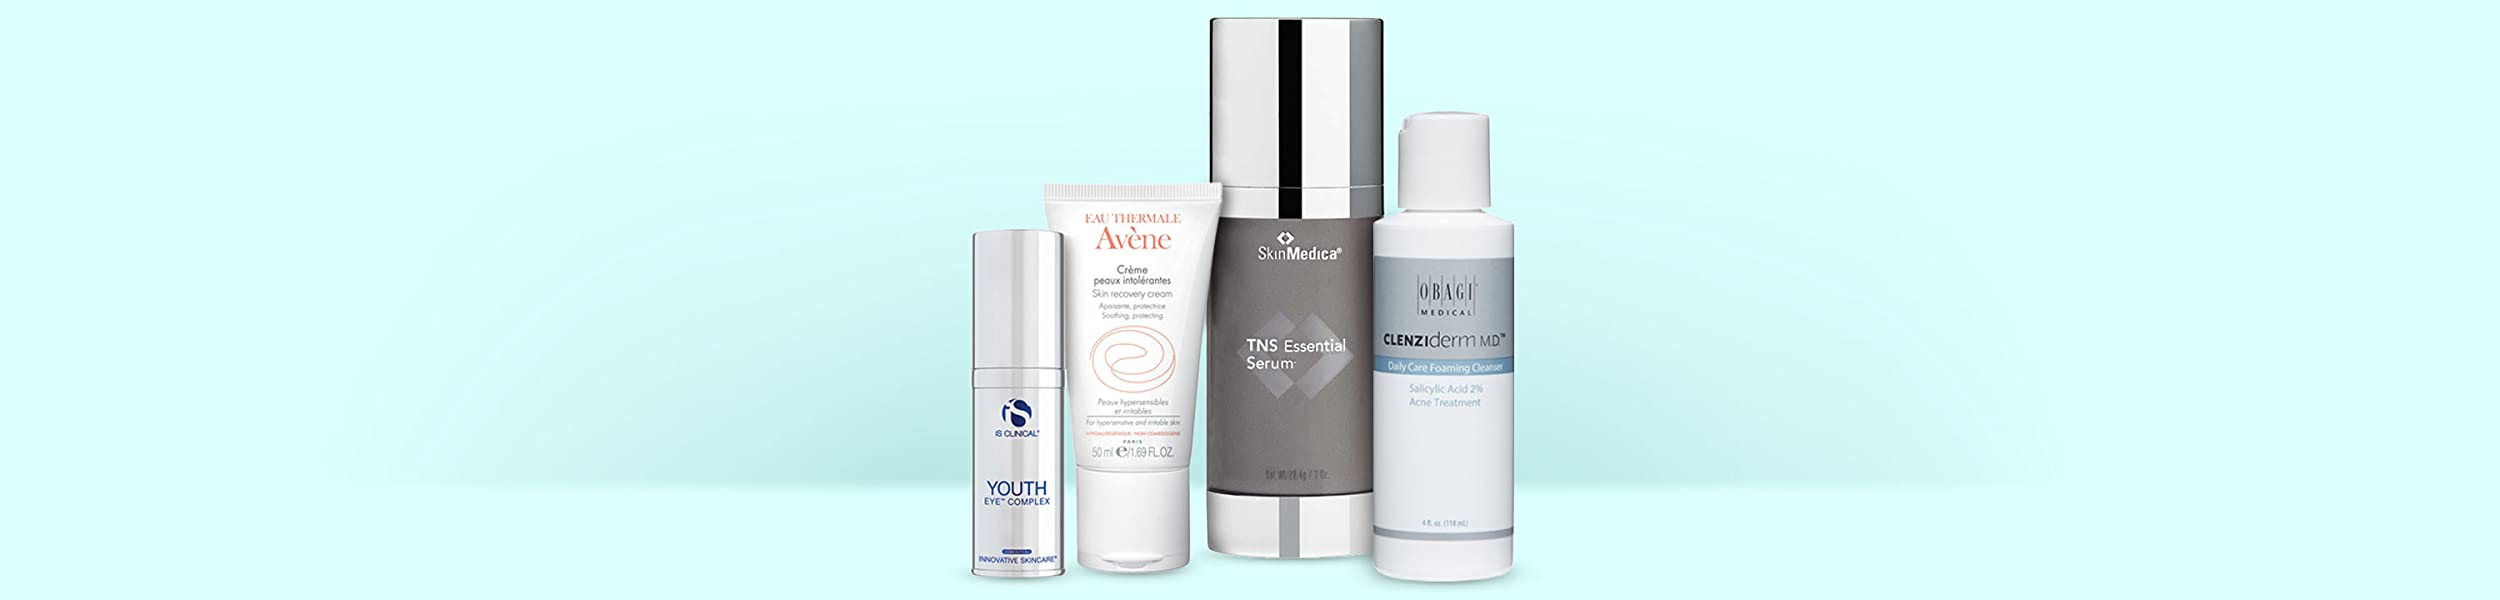 Skin care tips and professional-quality products